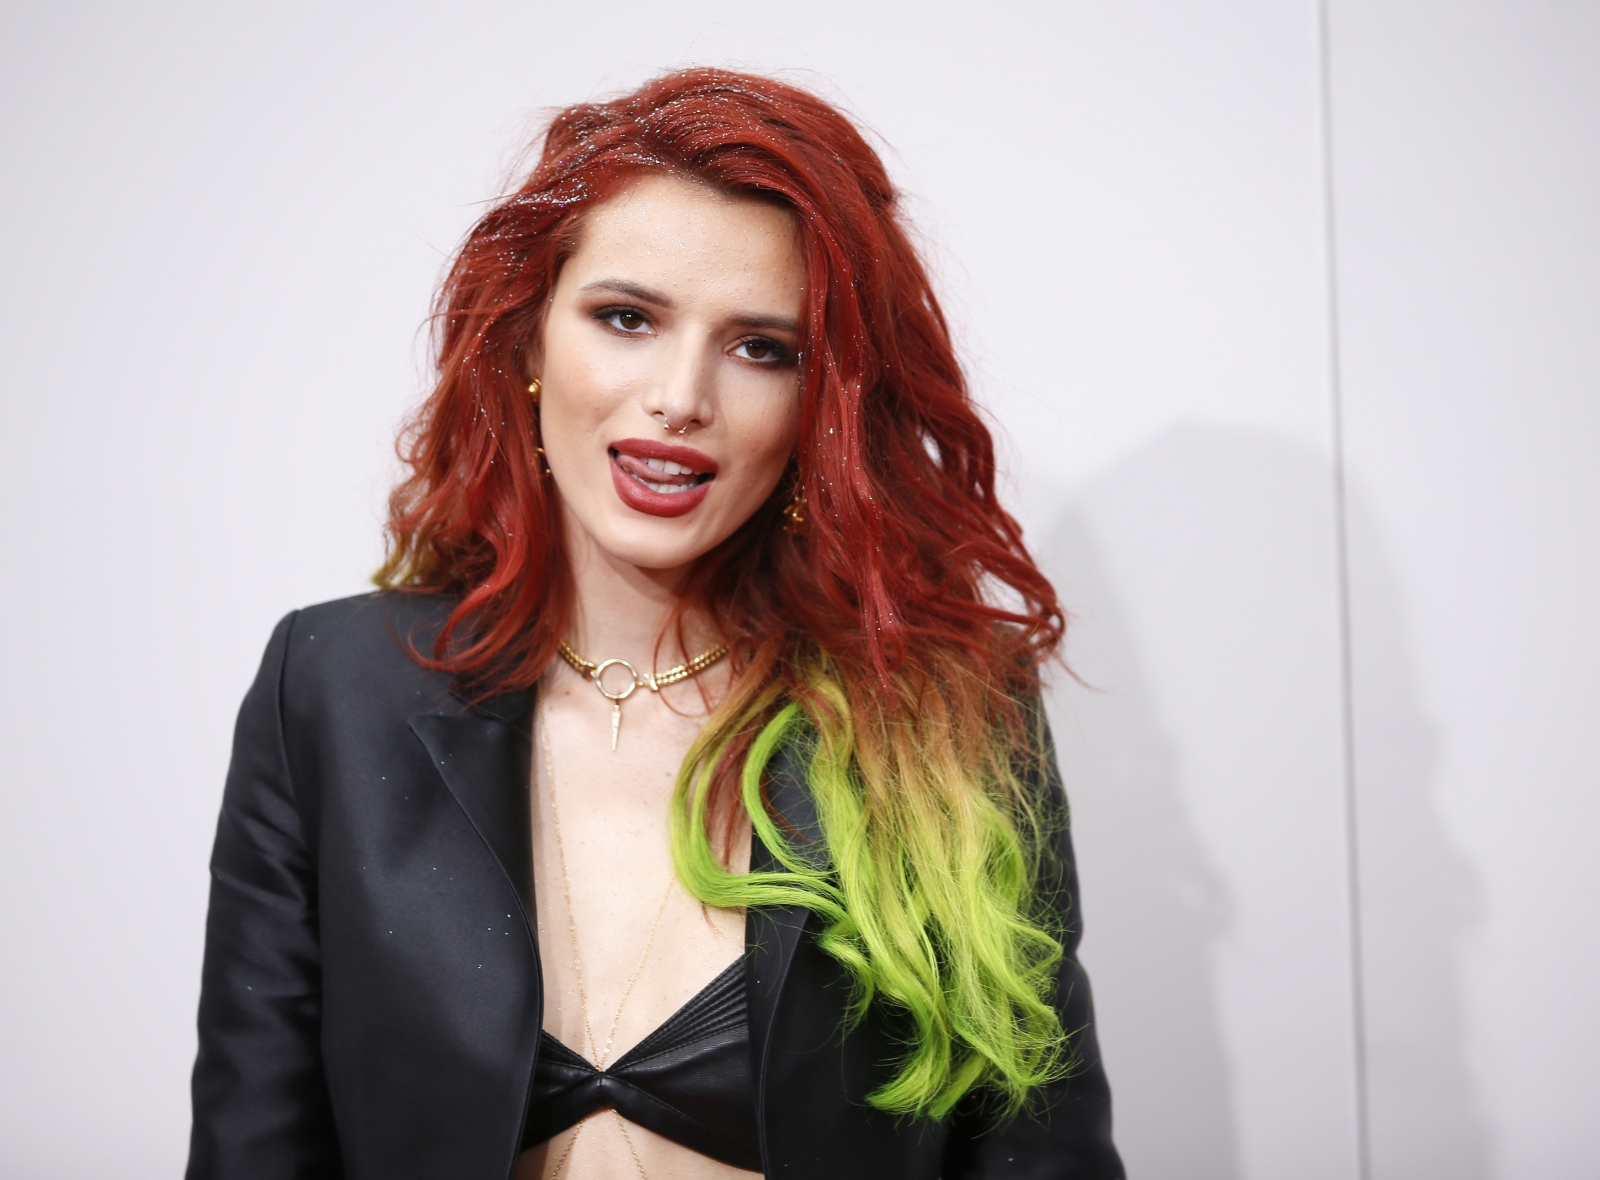 Bella Thorne goes naked and bites her thumb in sexy bathtub photo